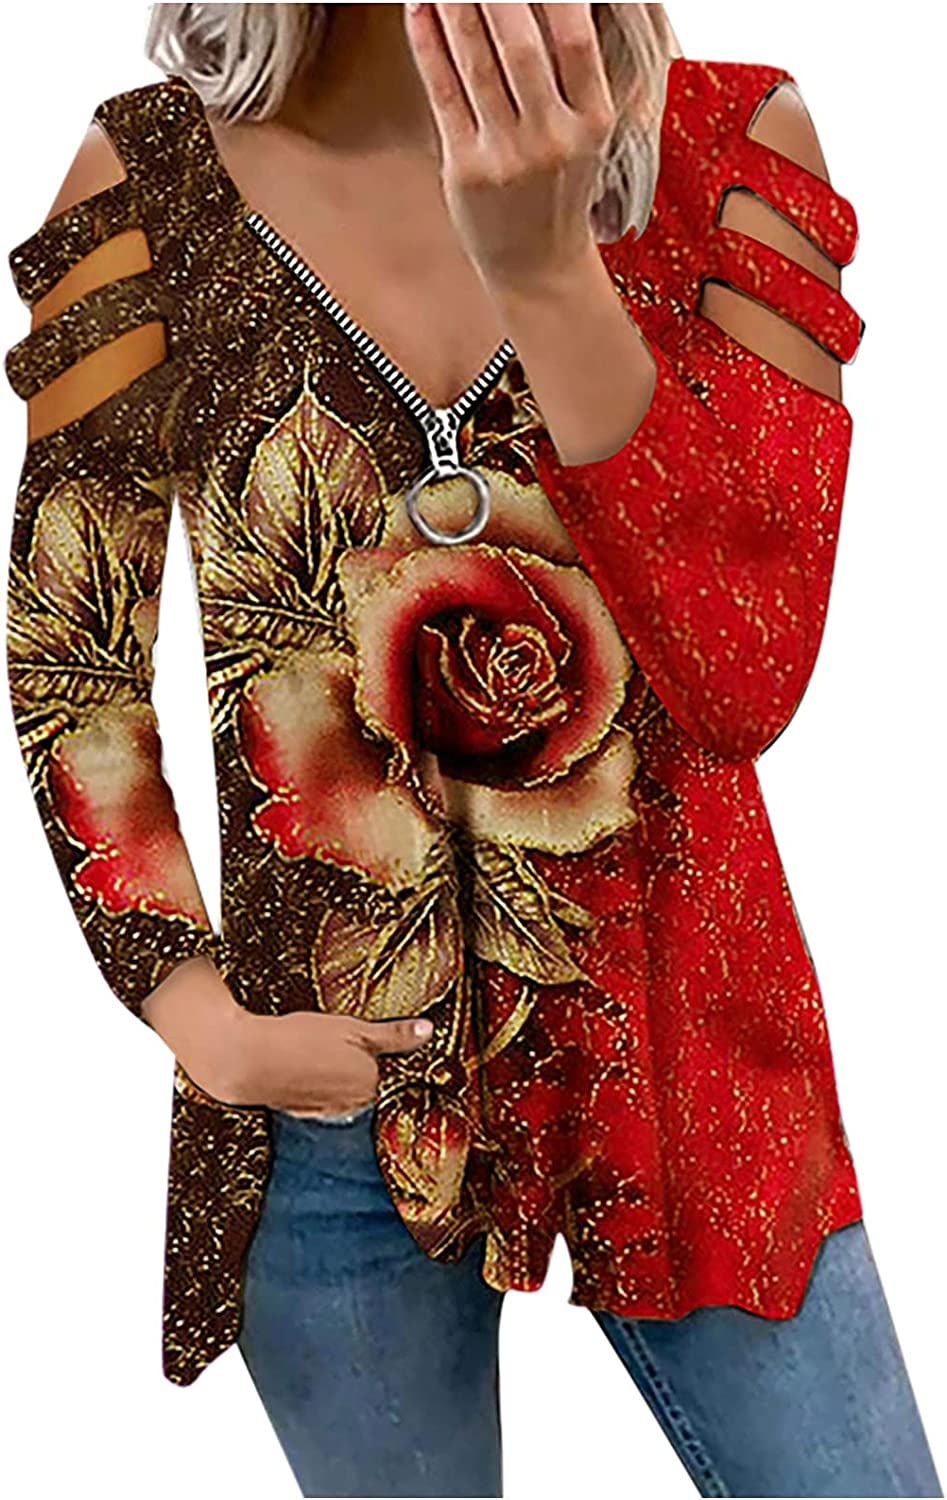 Womens Tops V-Neck Zipper Strapless T-Shirts Butterfly Floral Printed Blouses Long Sleeve Hollow Out Tunic